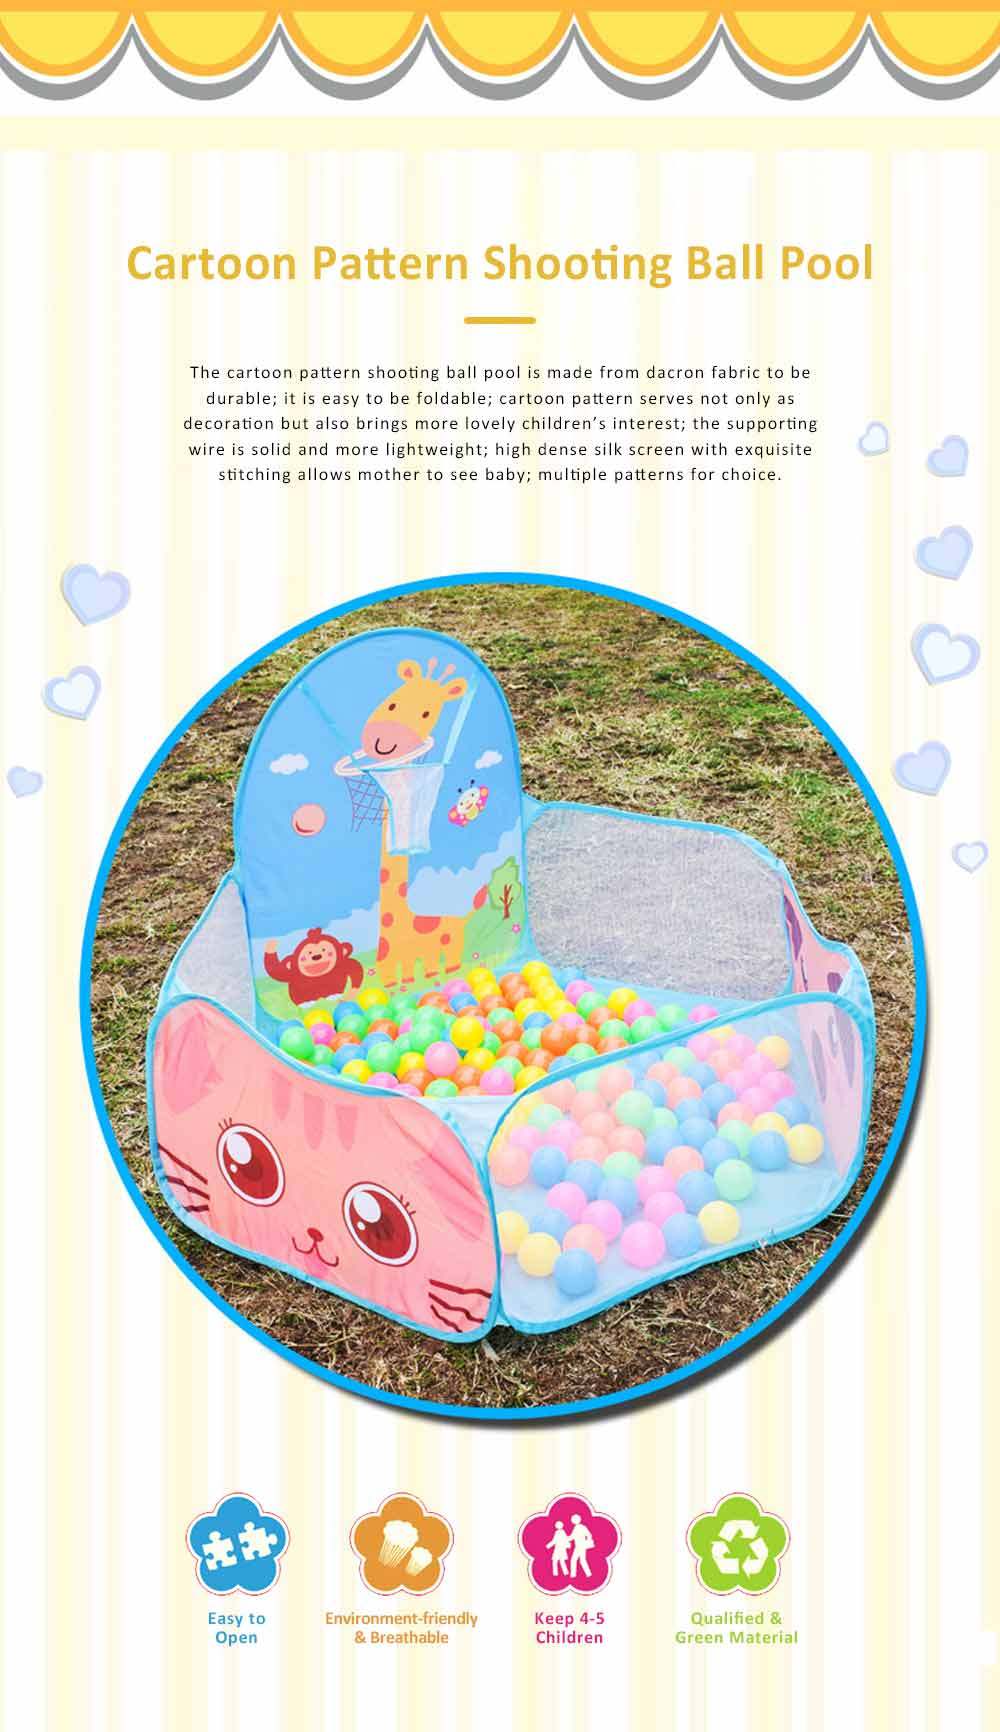 Cartoon Animal Patterns Ocean Ball Pool 1.2-meters, Shooting Basket Ball Box for Children Foldable Ball Pool 0